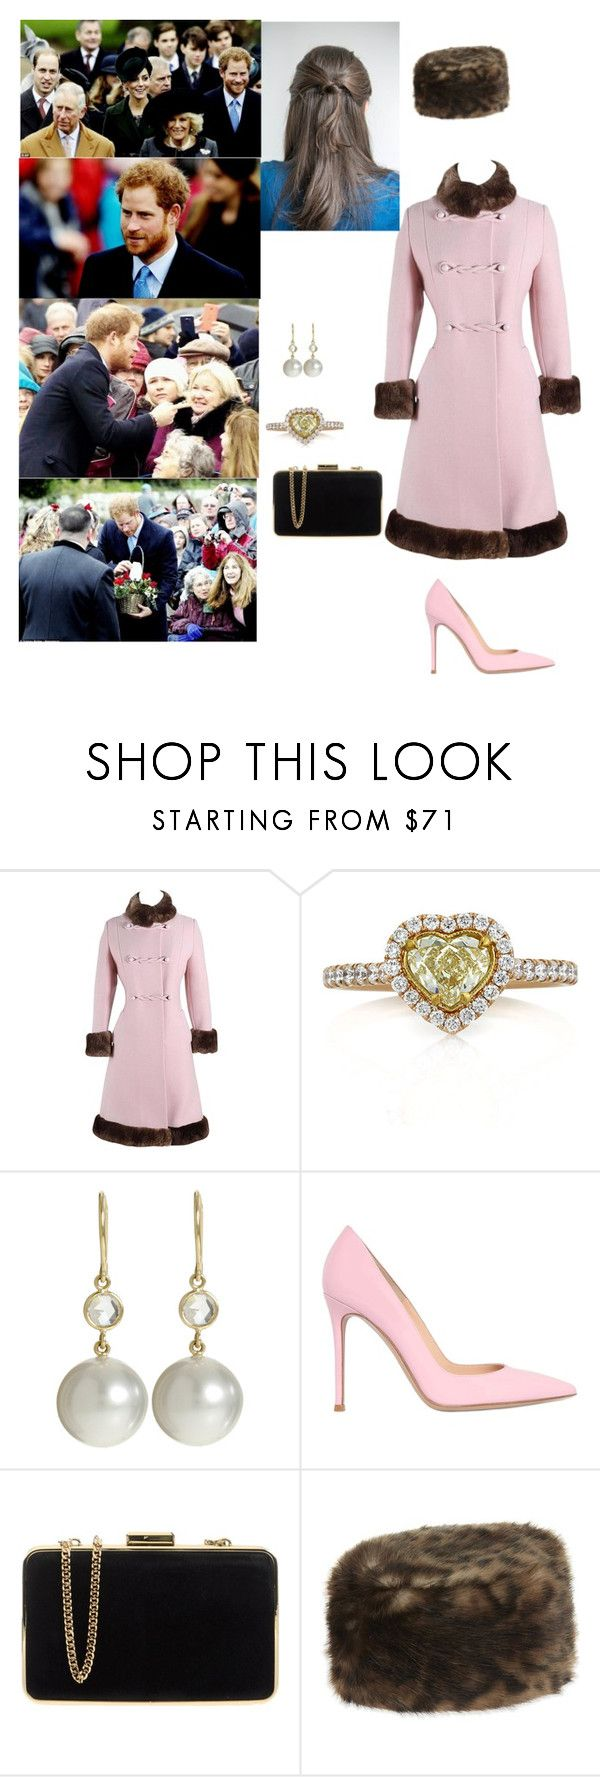 """Attending Christmas Morning Service at St Mary Magdalene Church"" by duchessofoxfordshire ❤ liked on Polyvore featuring Mark Broumand, Finn, Gianvito Rossi, MICHAEL Michael Kors and Helen Moore"